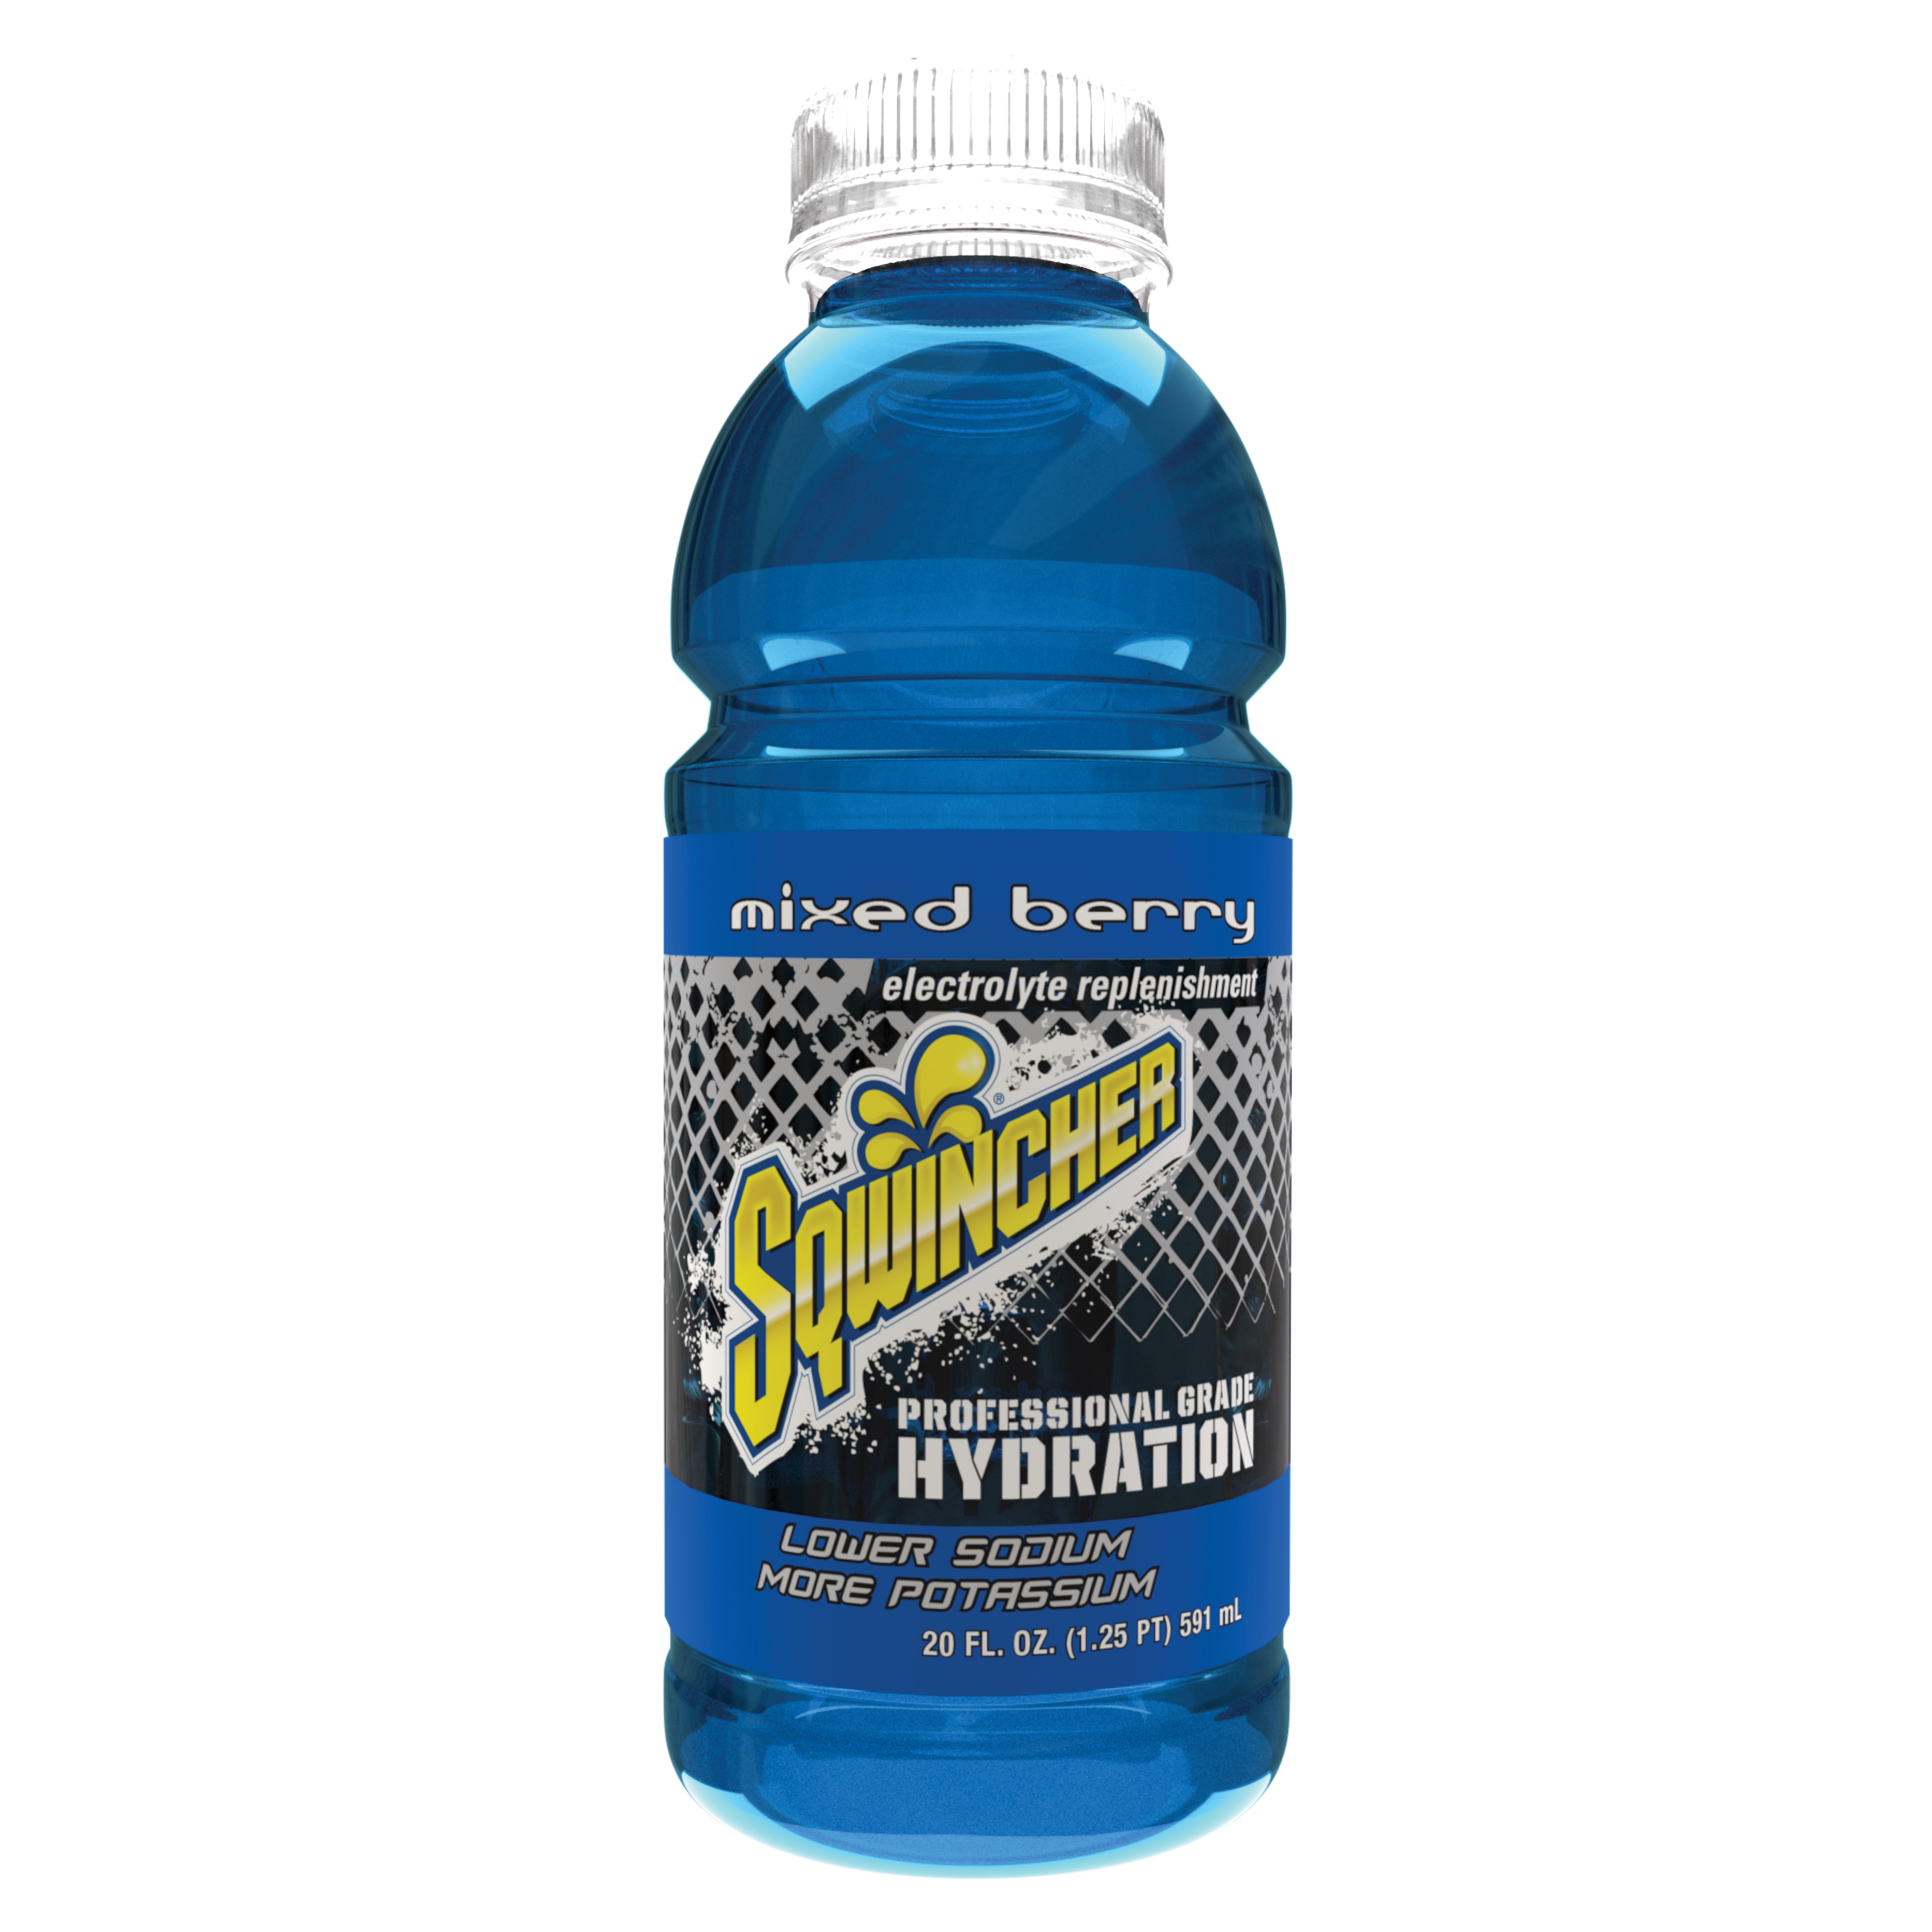 Sqwincher® 030530-MB Widemouth Sports Drink, 20 oz Ready-To-Drink Plastic Bottle, Liquid, Mixed Berry